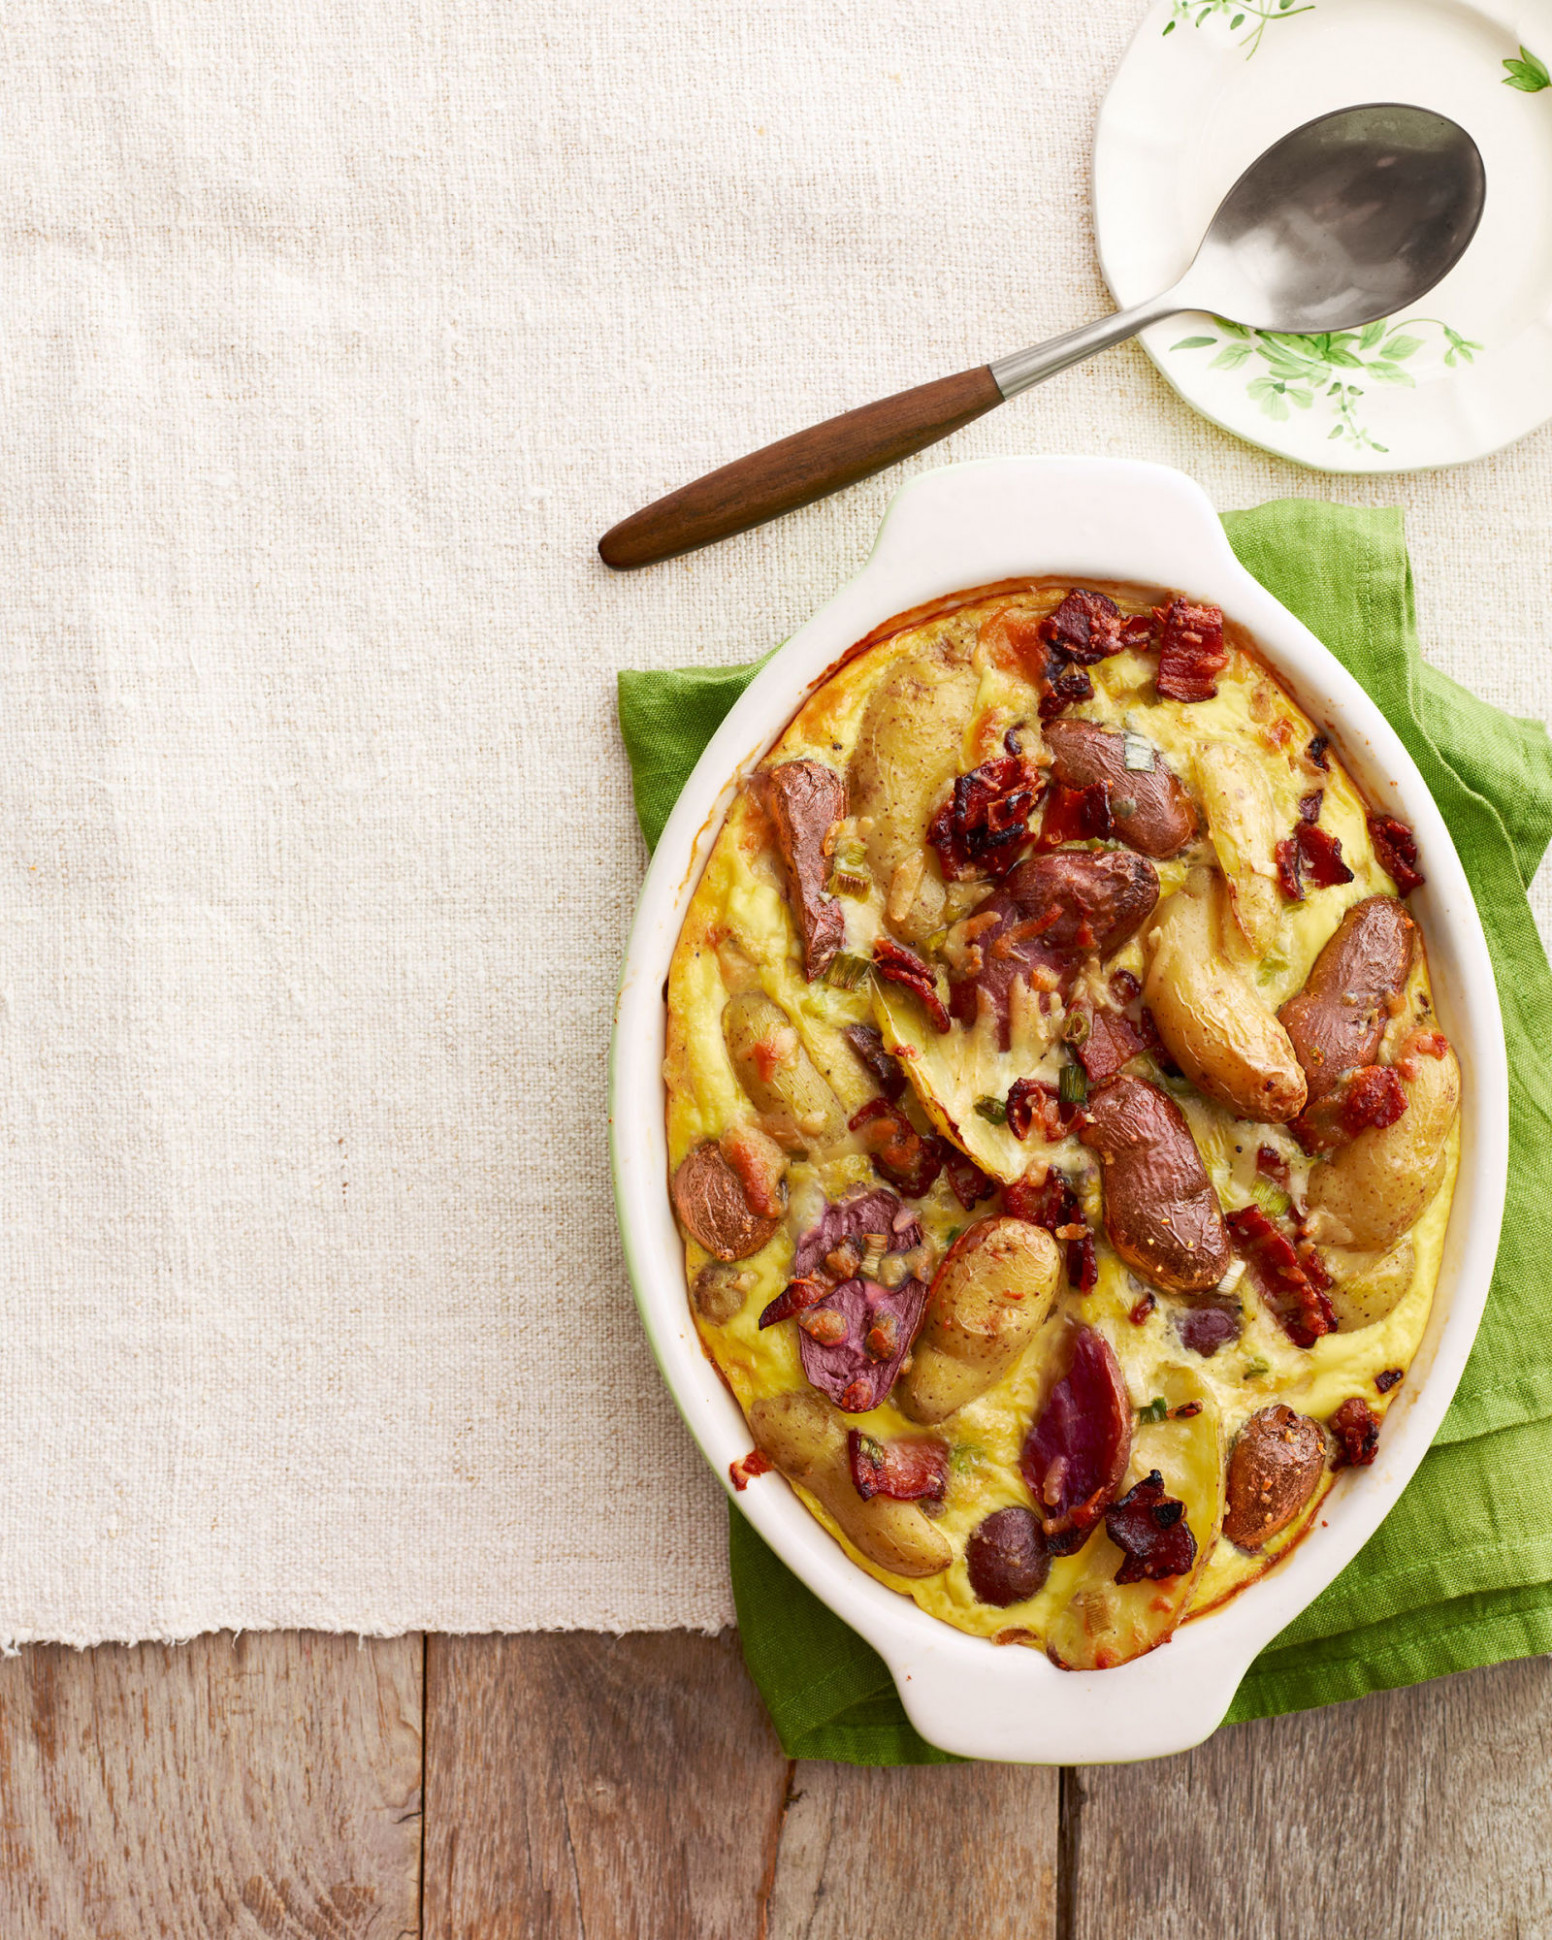 Potato and Manchego Casserole with Maple Bacon Recipe - dinner recipes using bacon